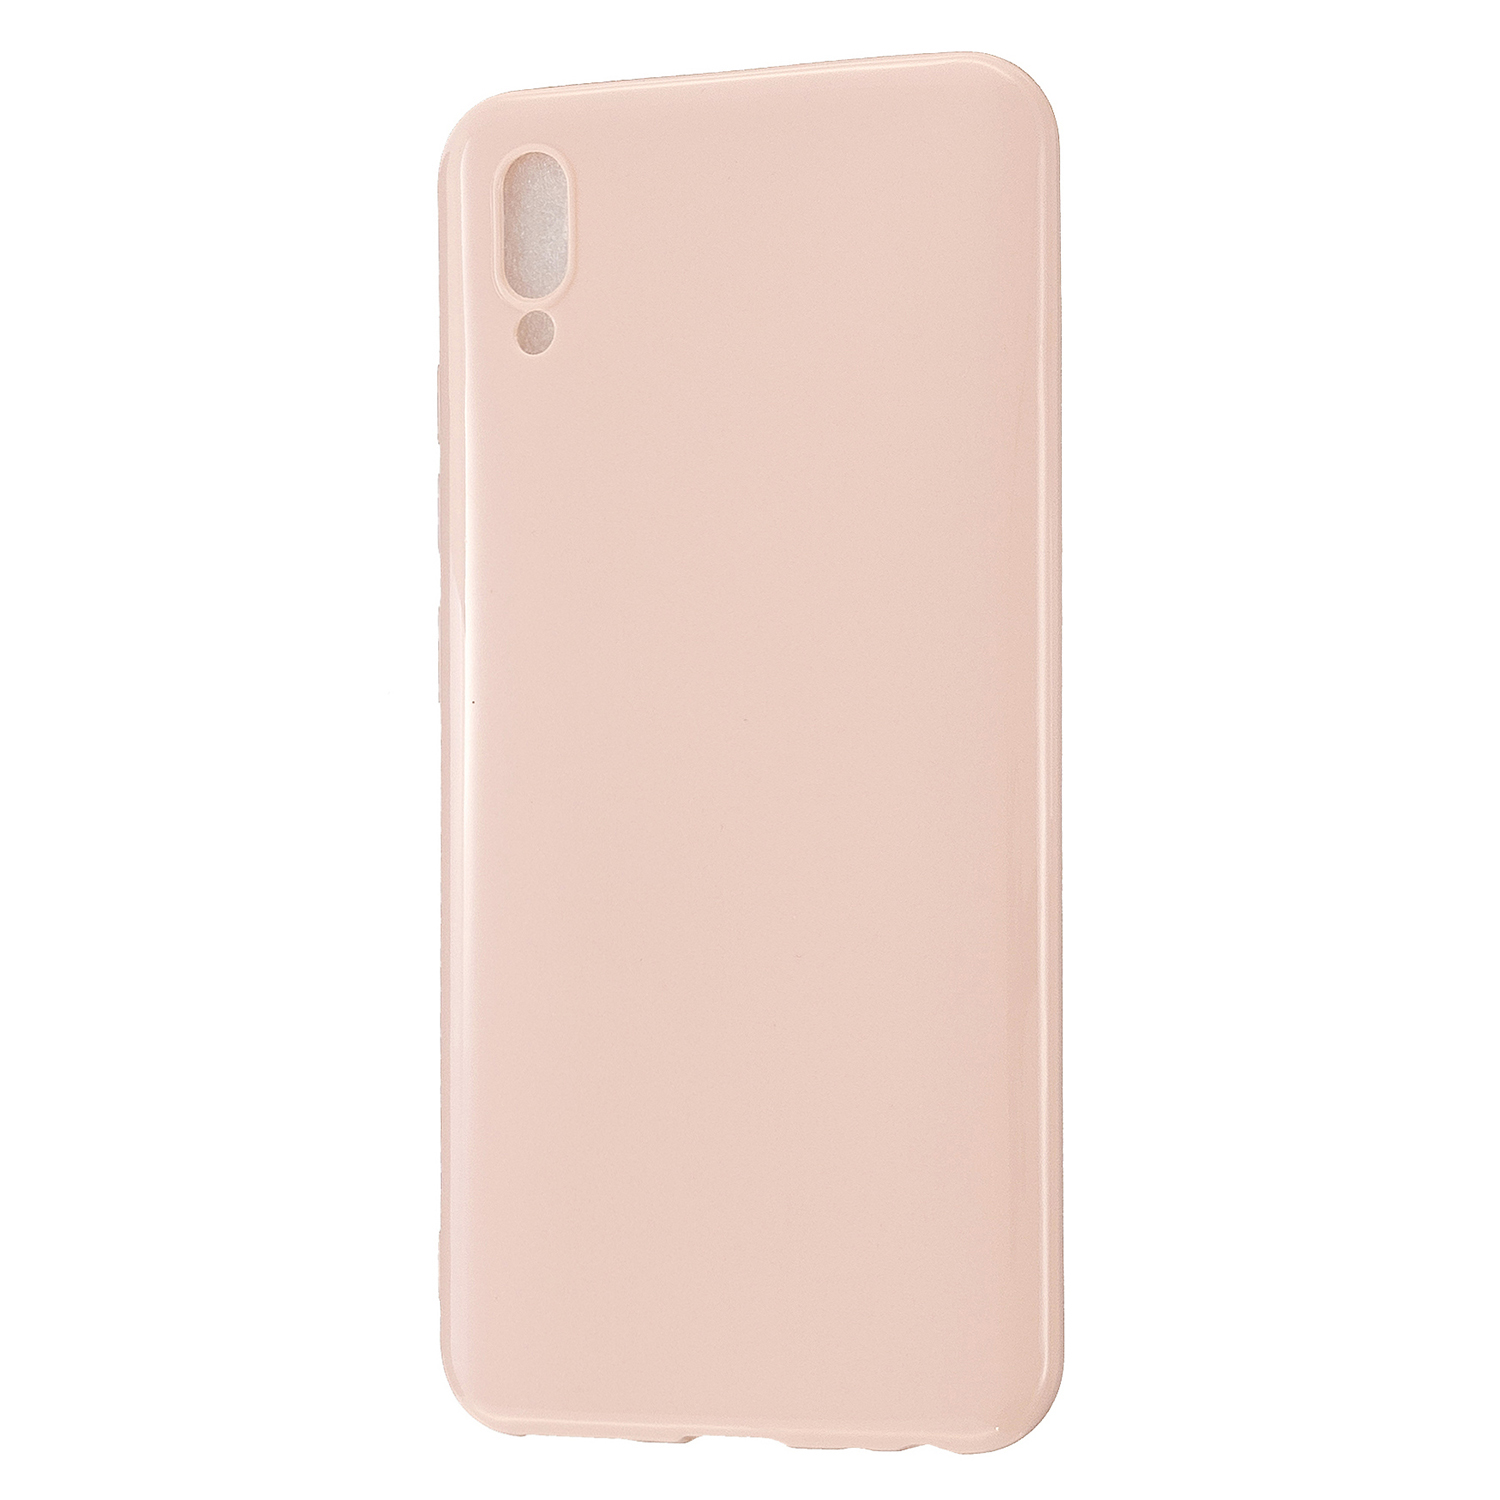 For VIVO Y93/Y95 Mobile Phone Case Glossy Finish Lightweight TPU Cellphone Cover Anti-scratch Overal Protection Shell Sakura pink